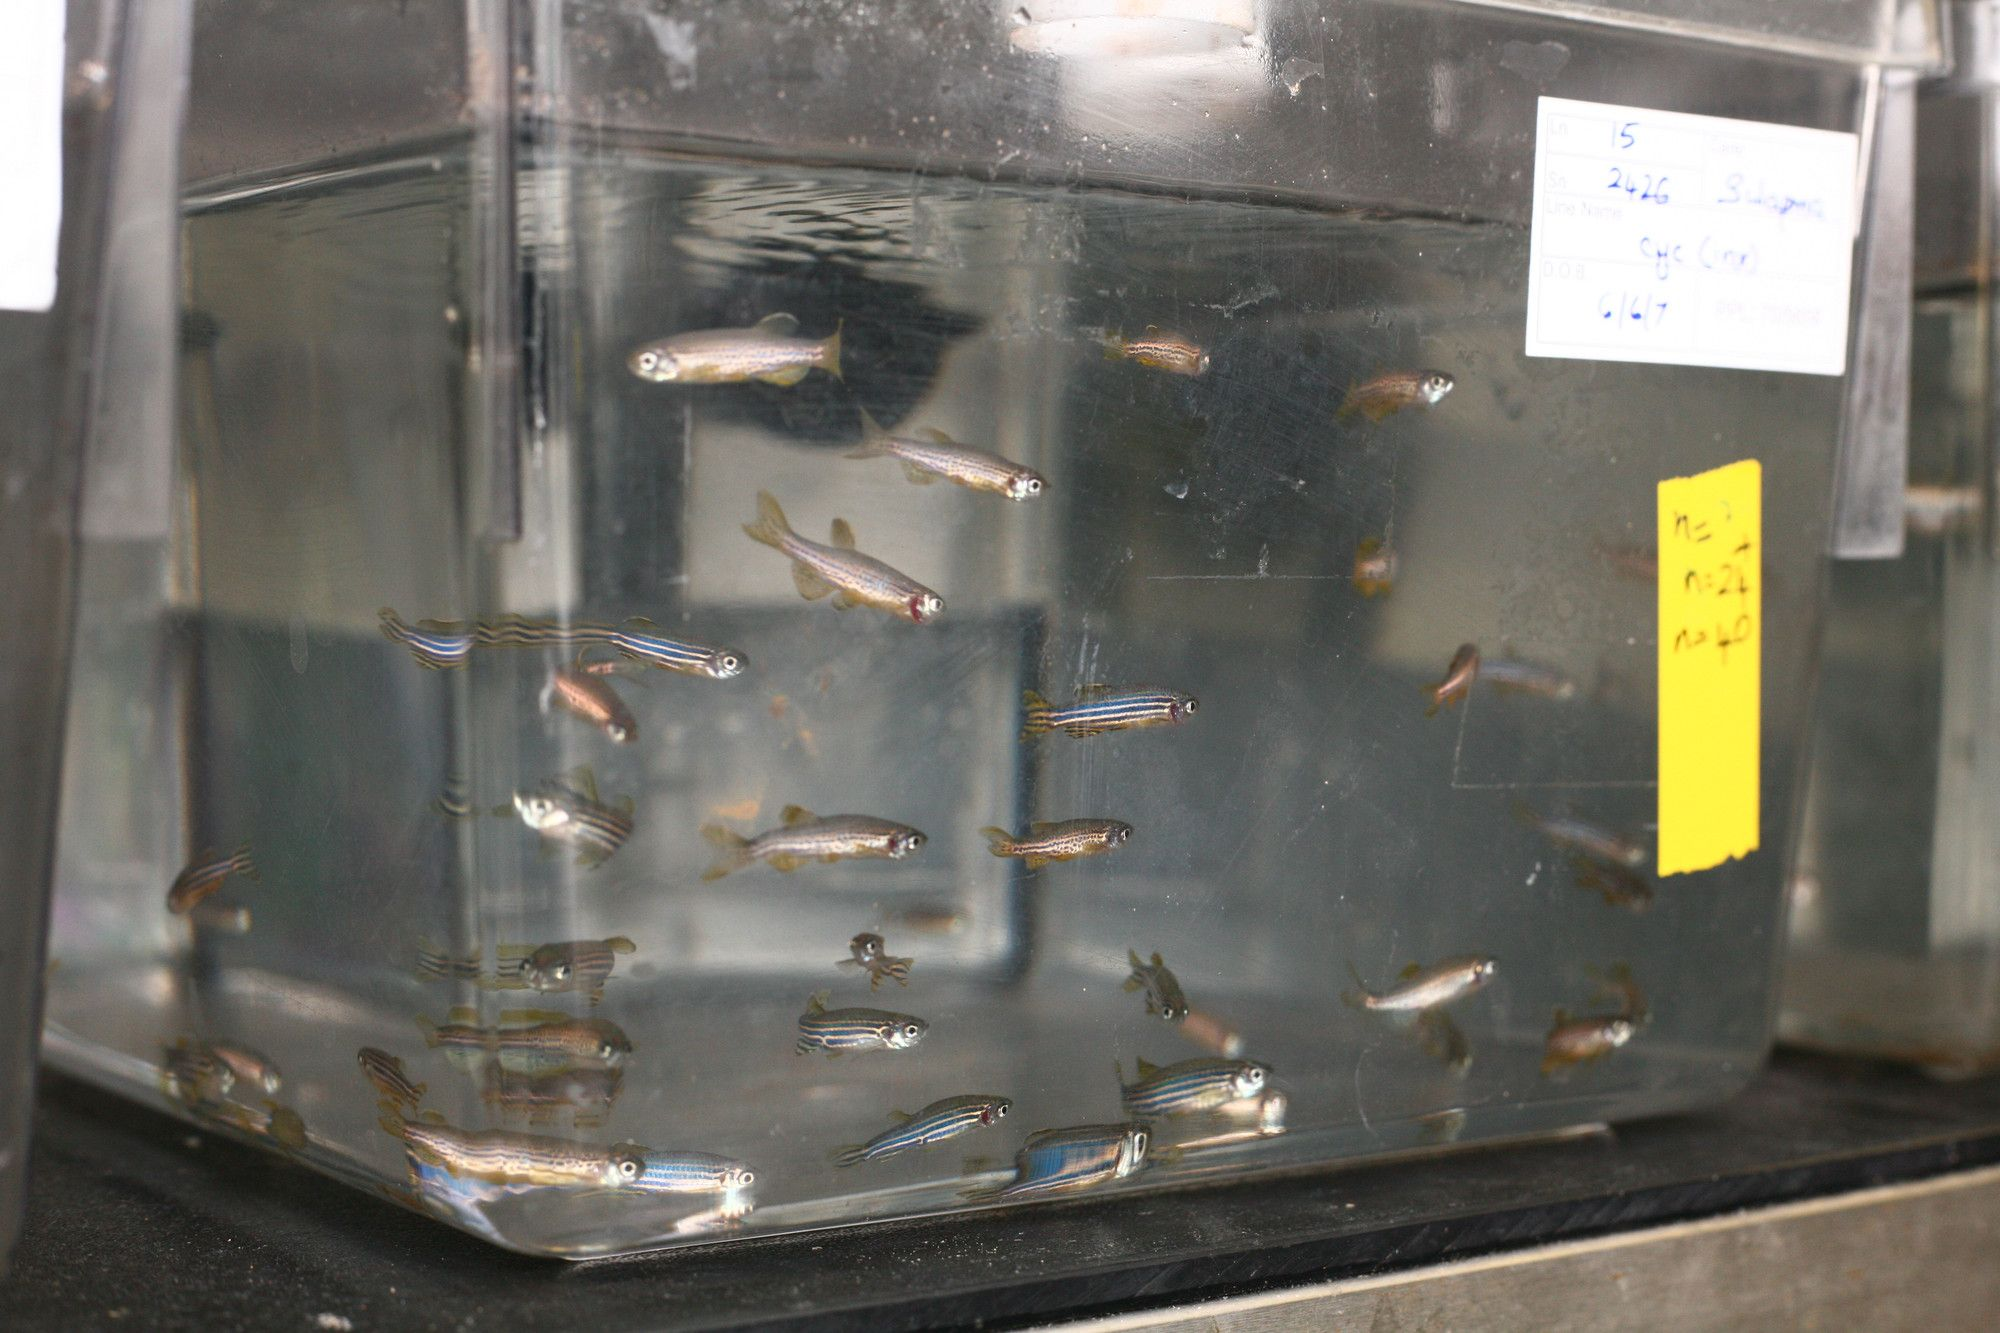 A tank of water with zebra fish swimming around